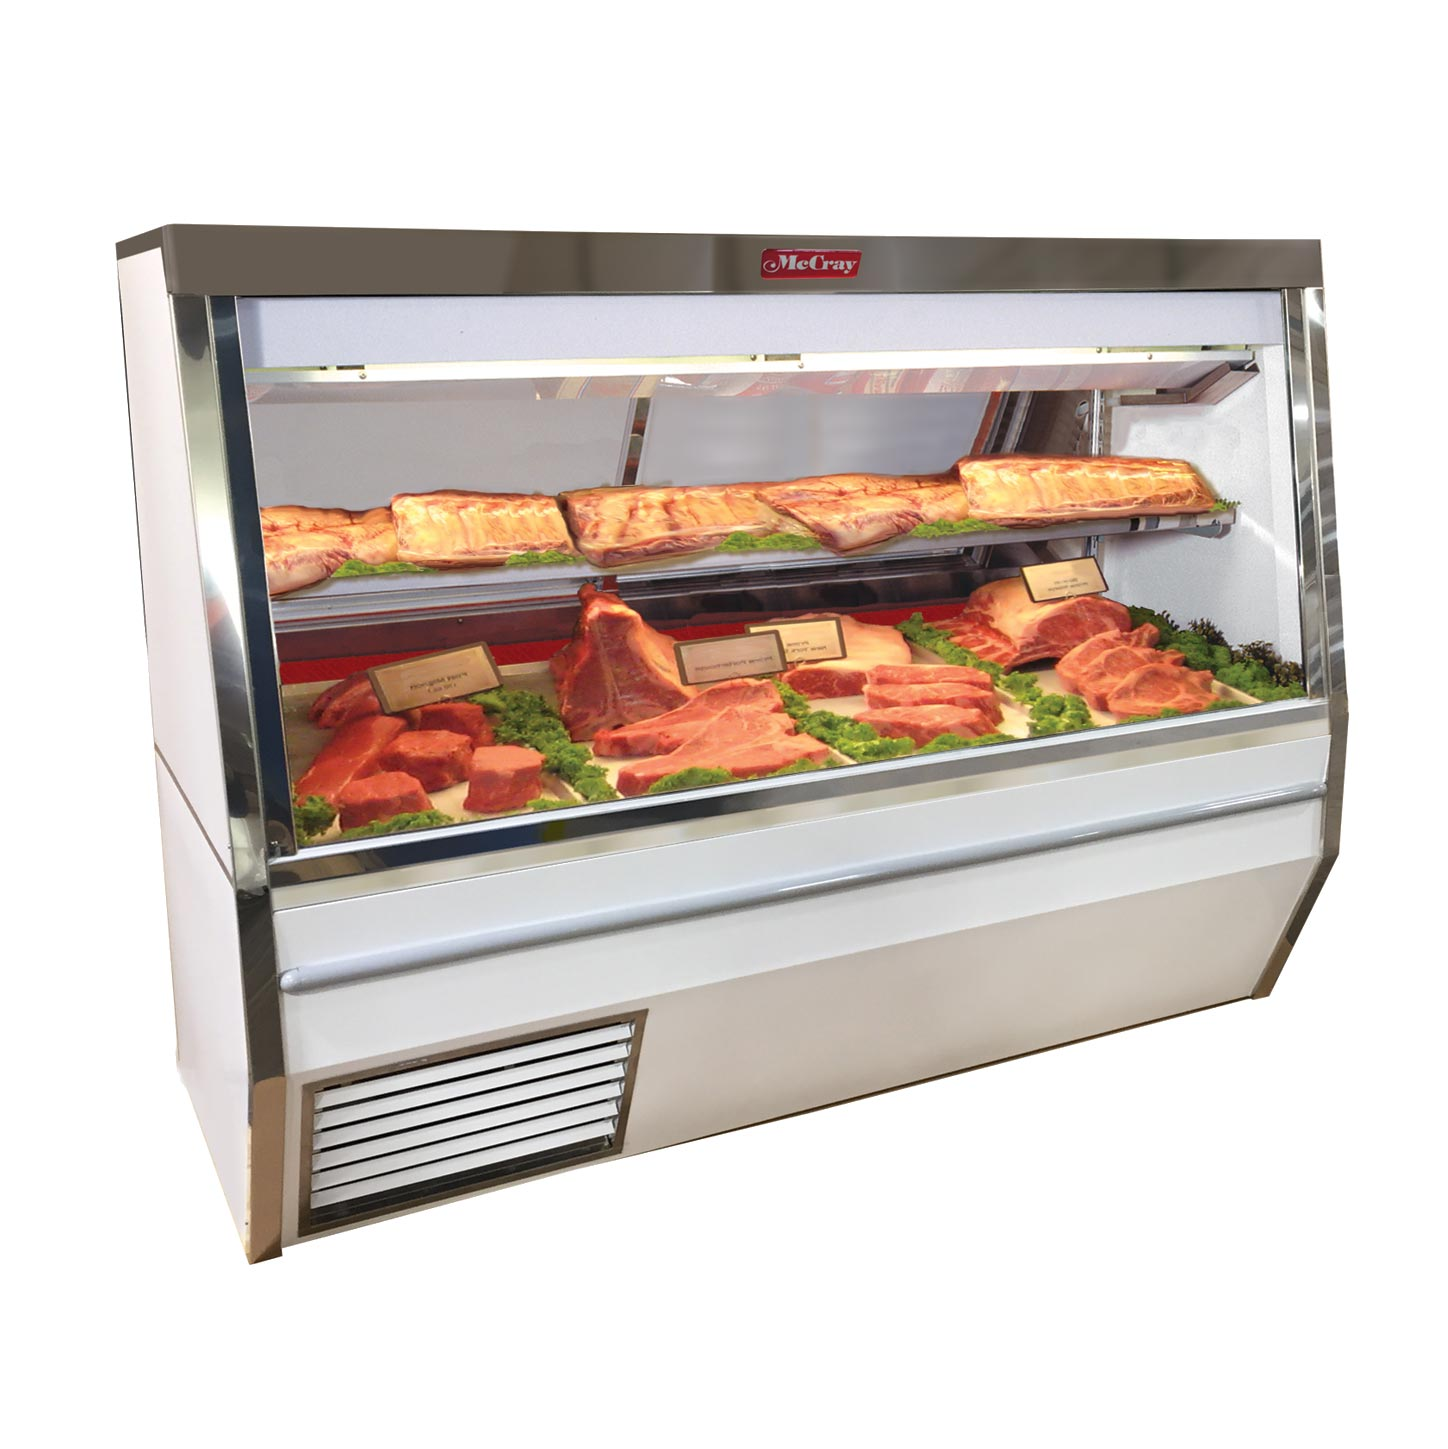 Howard-McCray R-CMS34N-6-S-LED display case, red meat deli